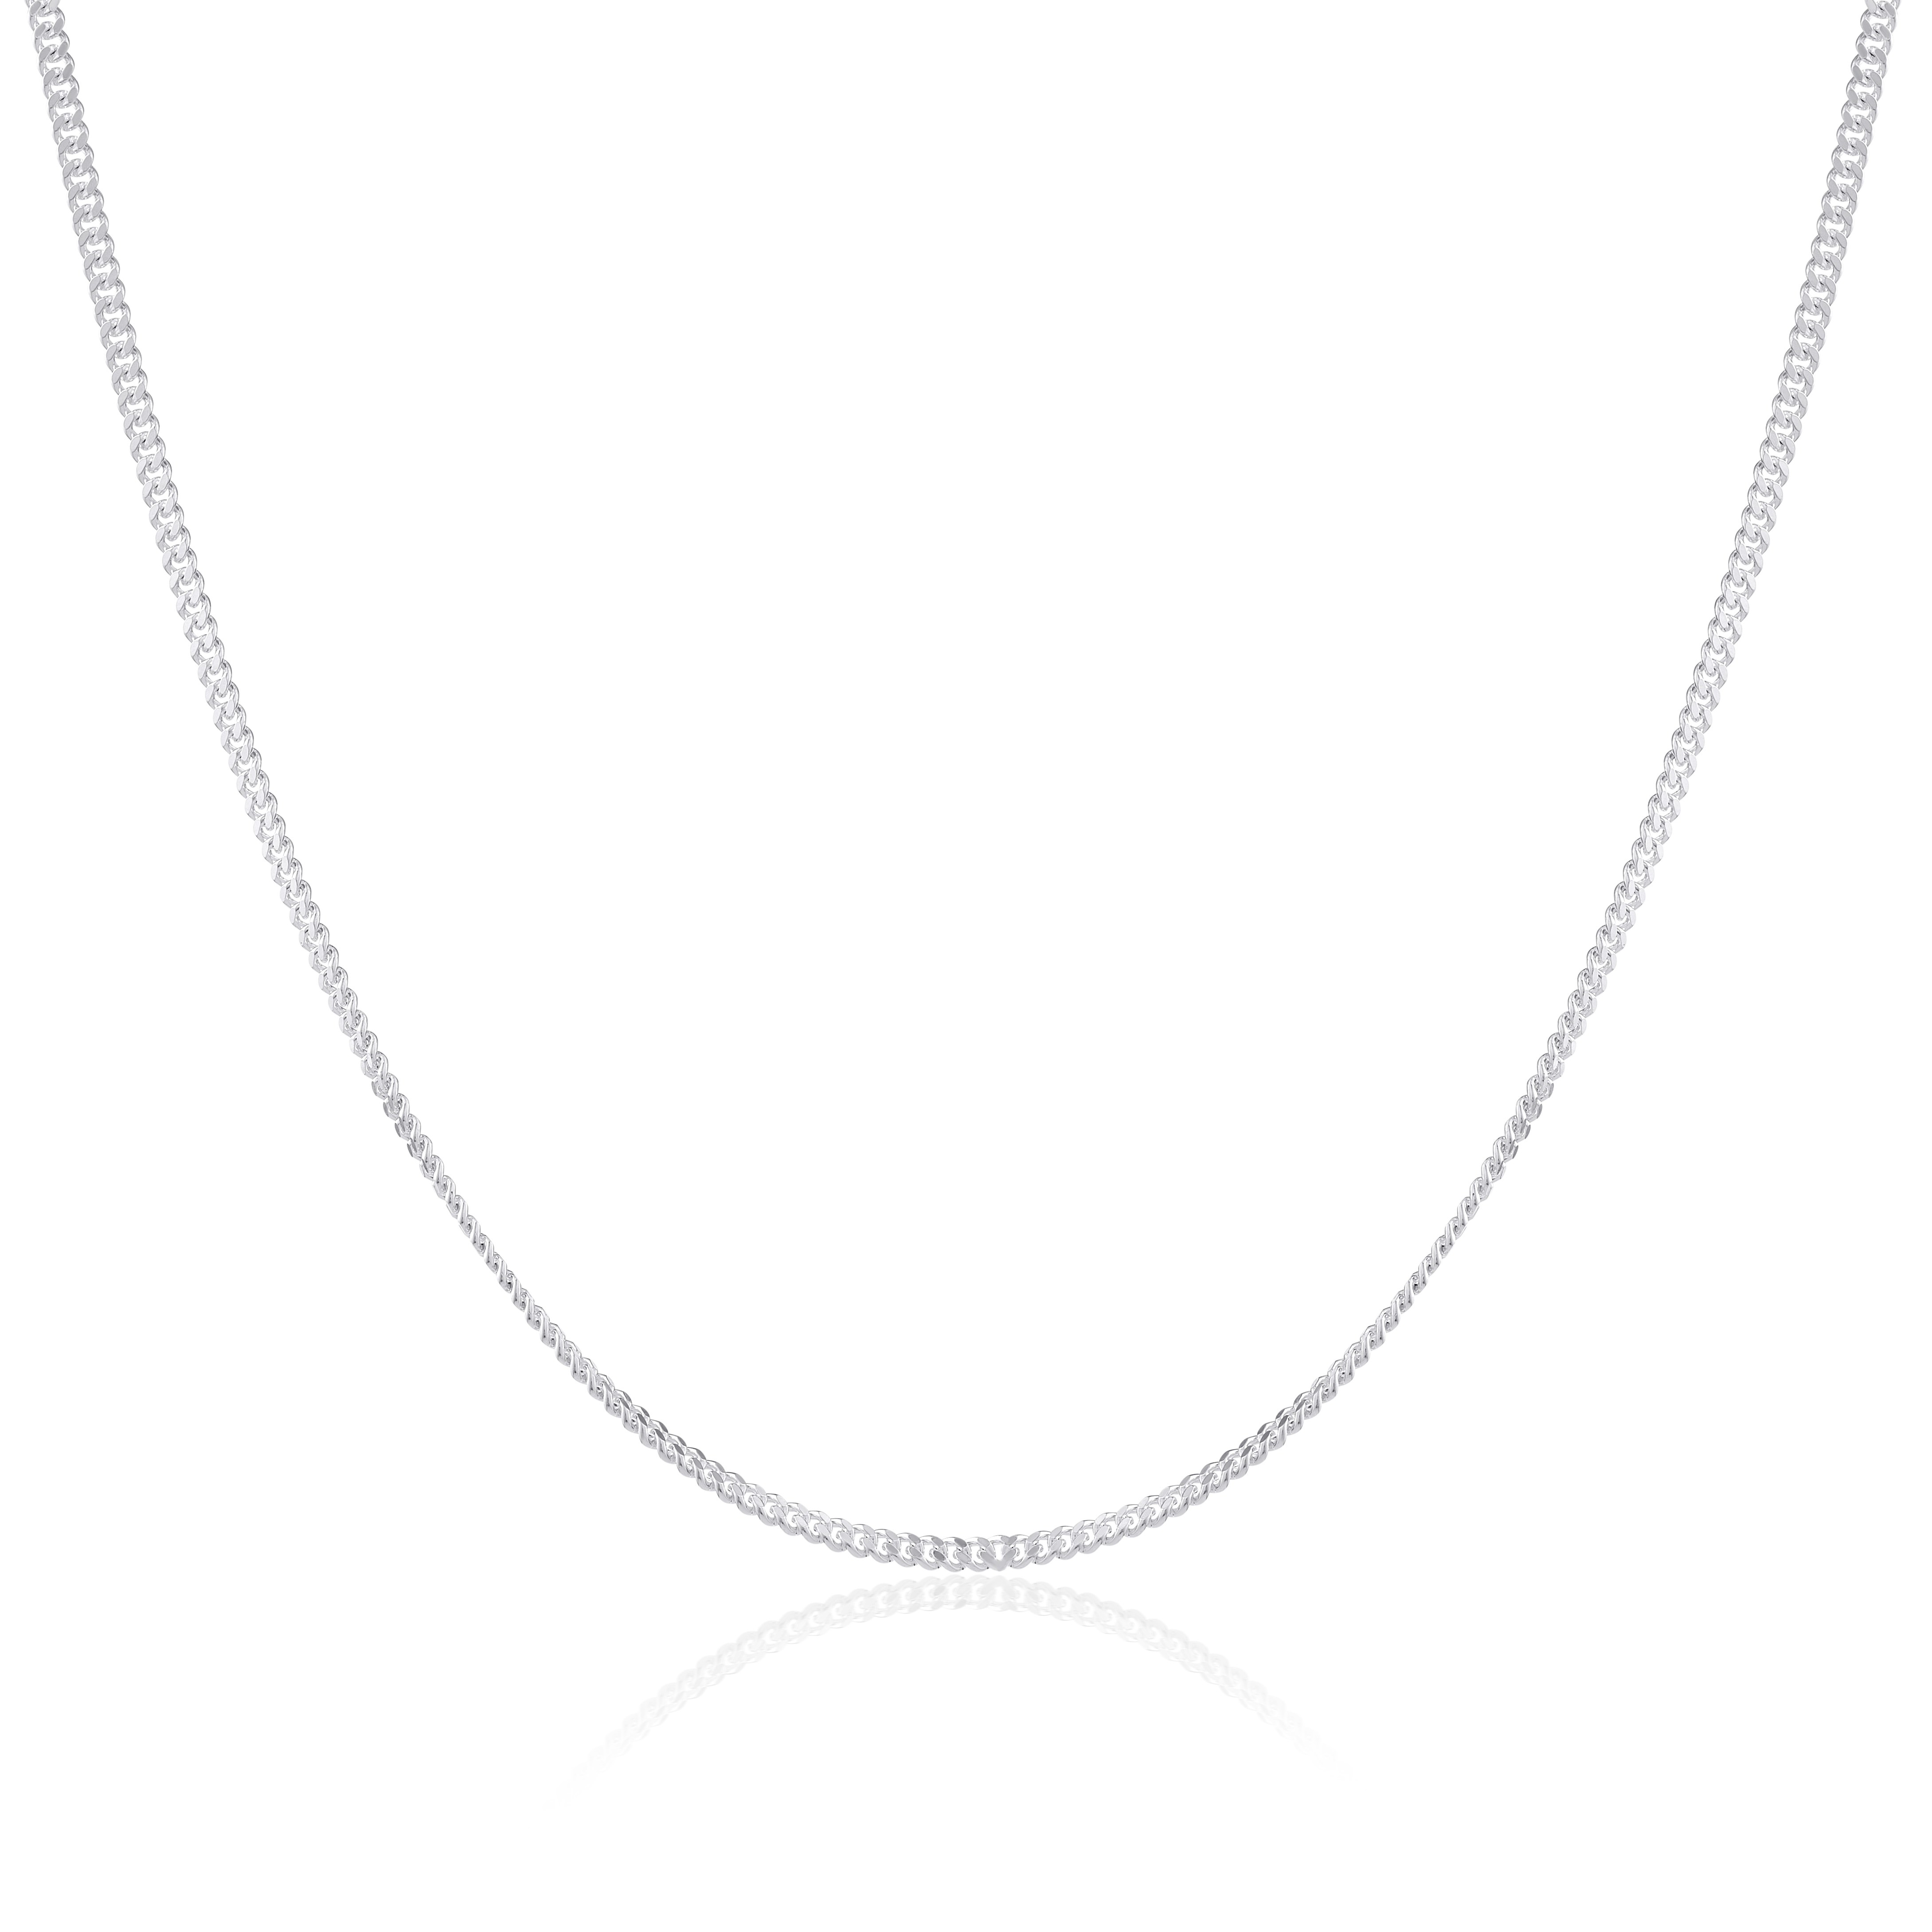 An image of Sterling Silver Diamond Cut Curb Chain